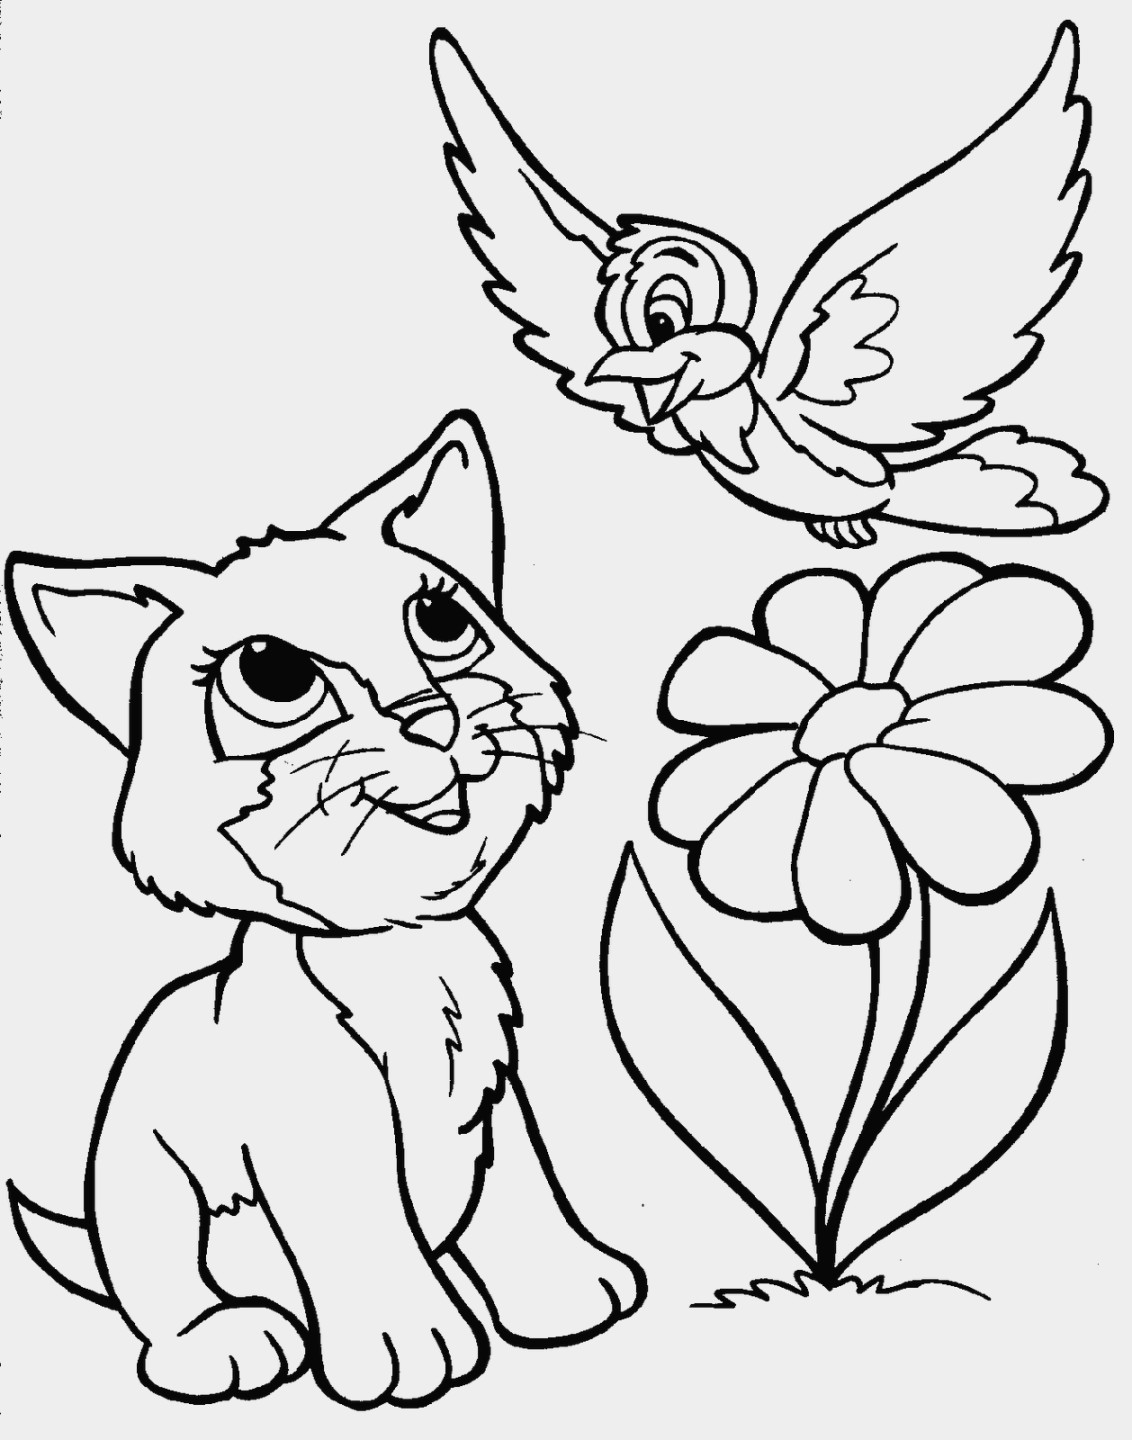 1132x1440 New Cutekawaii Animal Coloring Pages Design Printable Coloring Sheet